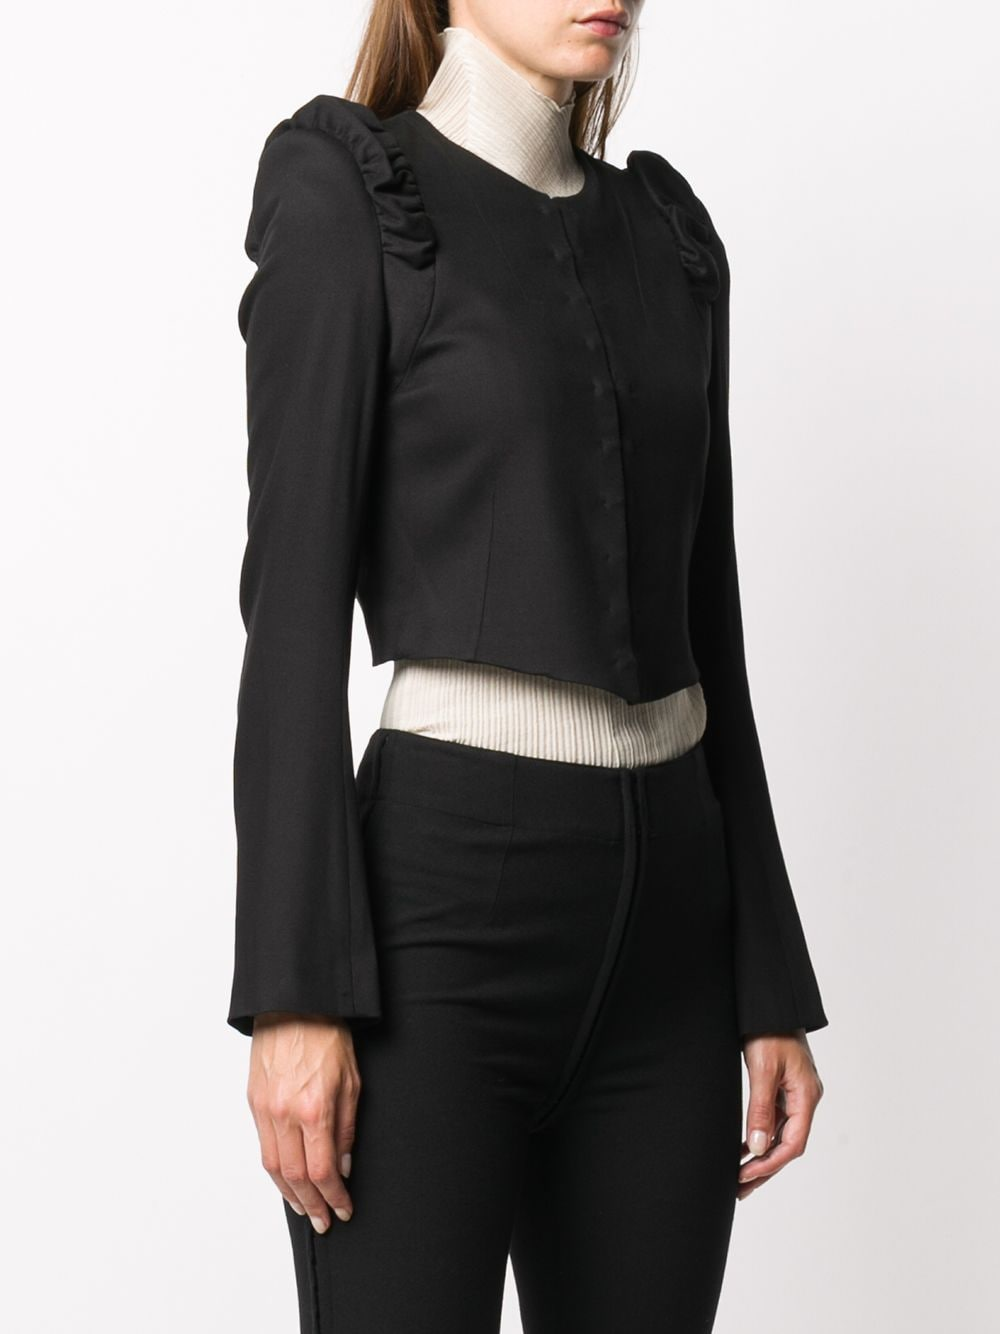 Giacca corta ANN DEMEULEMEESTER | Giacca | 2002-1030-189099